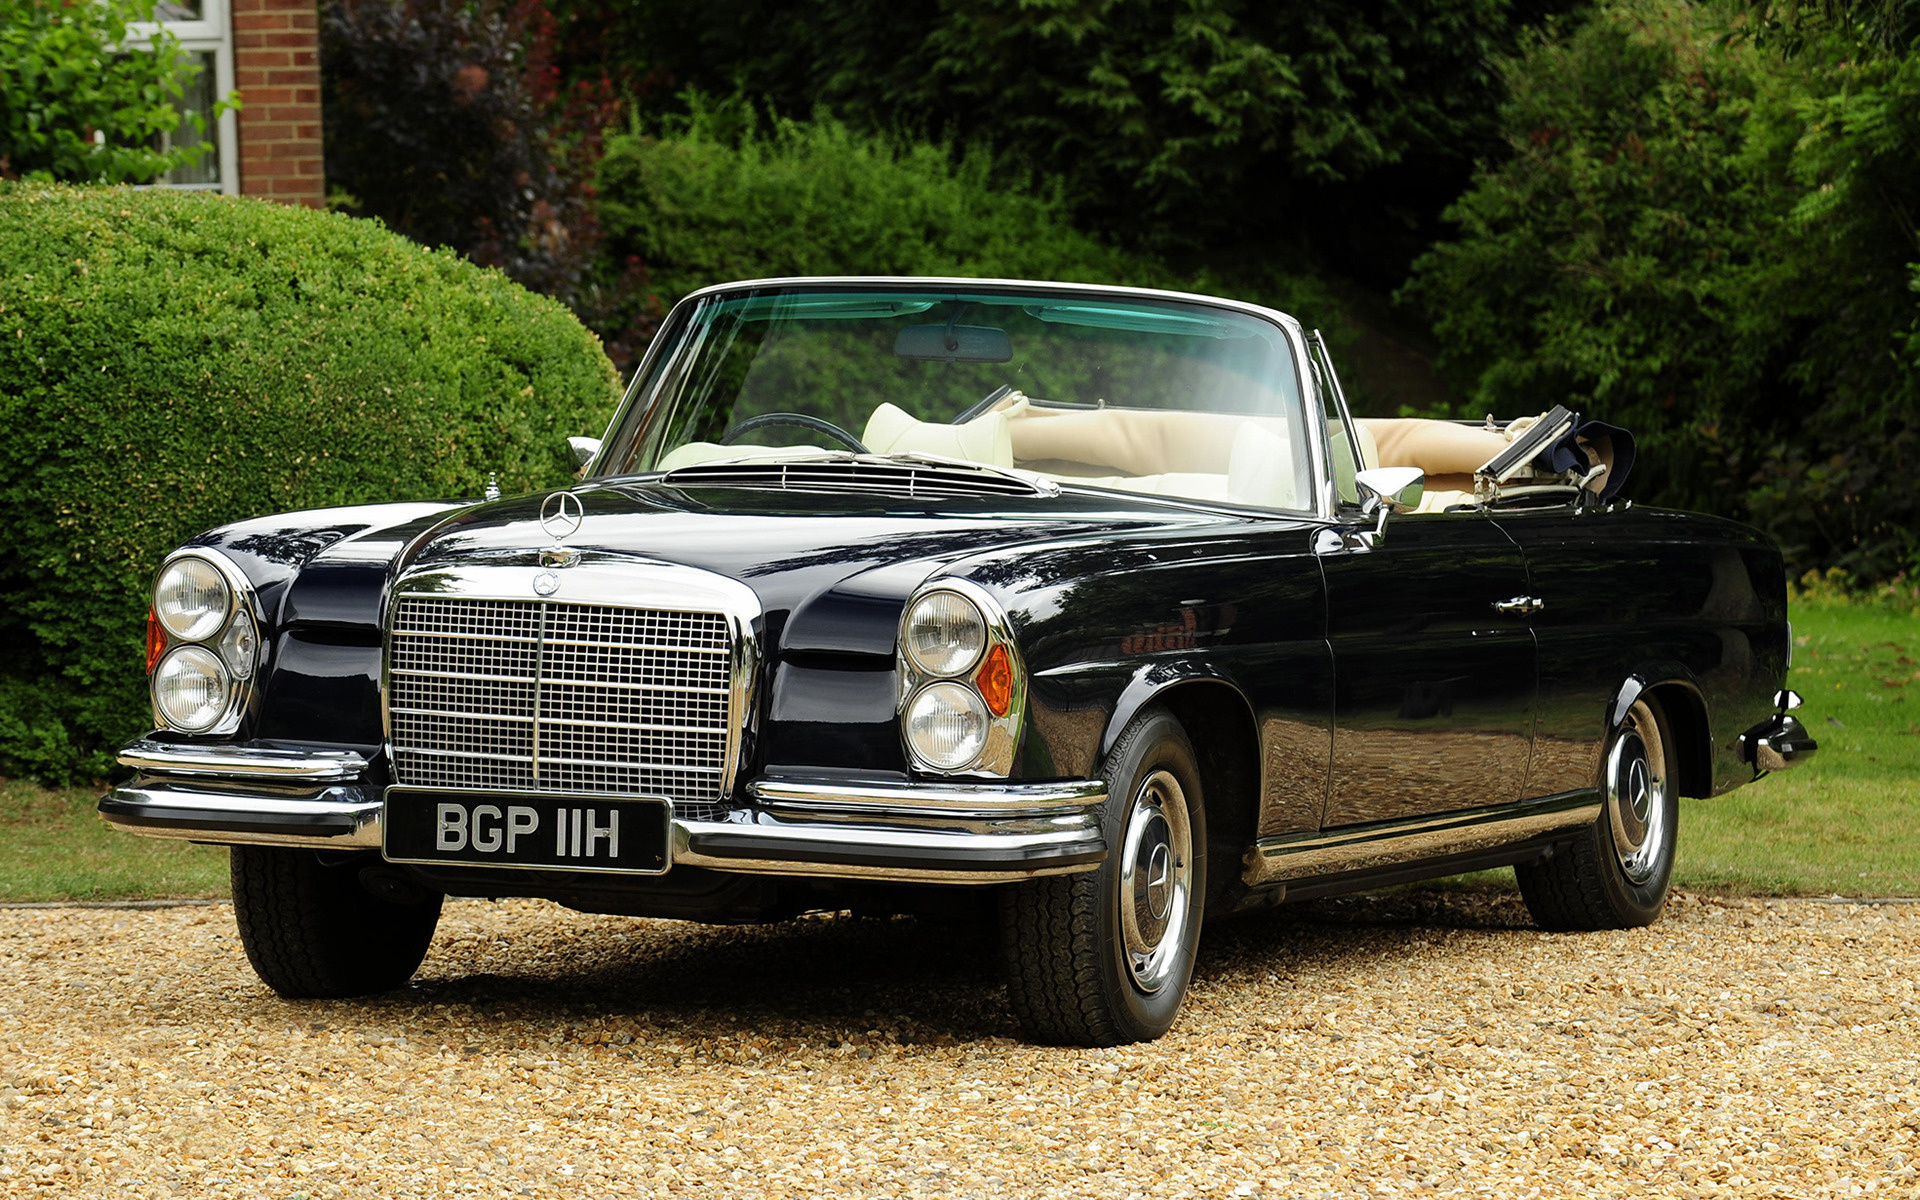 Mercedes benz 280 se cabriolet 1969 uk wallpapers and hd for 1969 mercedes benz 280 se convertible